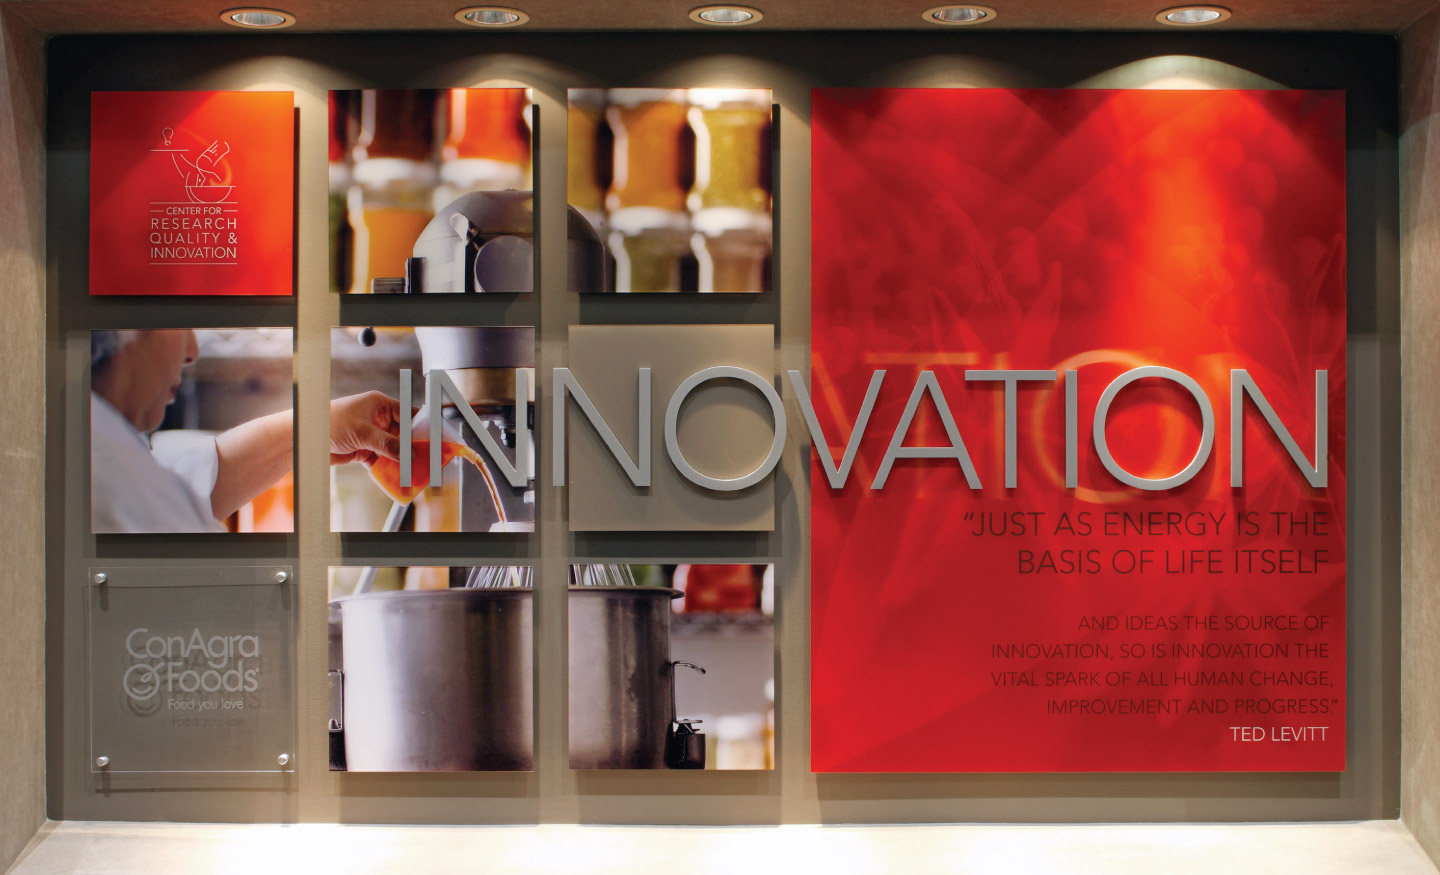 Internal communications signage for ConAgra Foods - Innovation theme